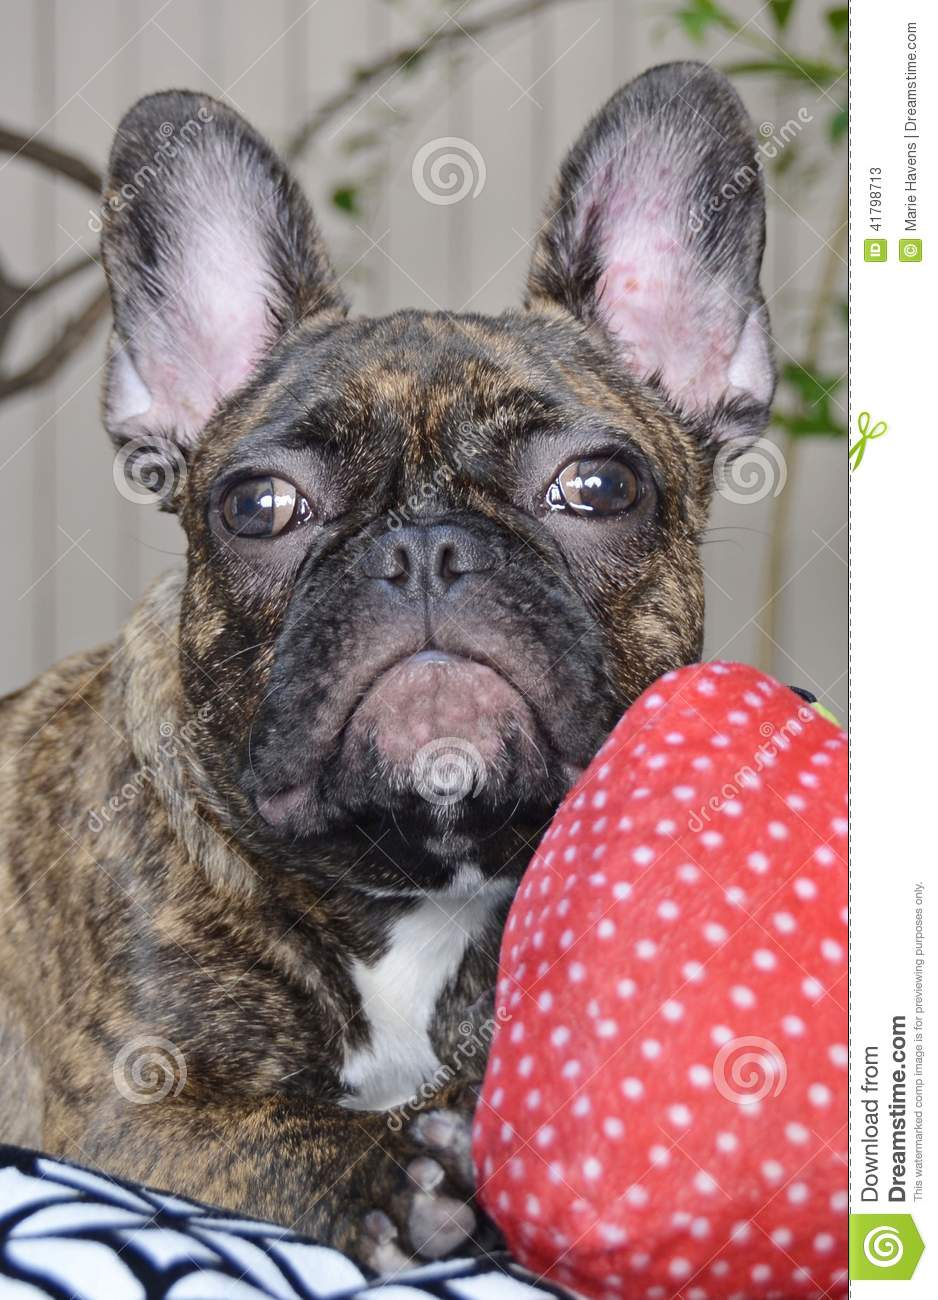 Cute French Bulldog Puppy With Allergies 002 Stock Image